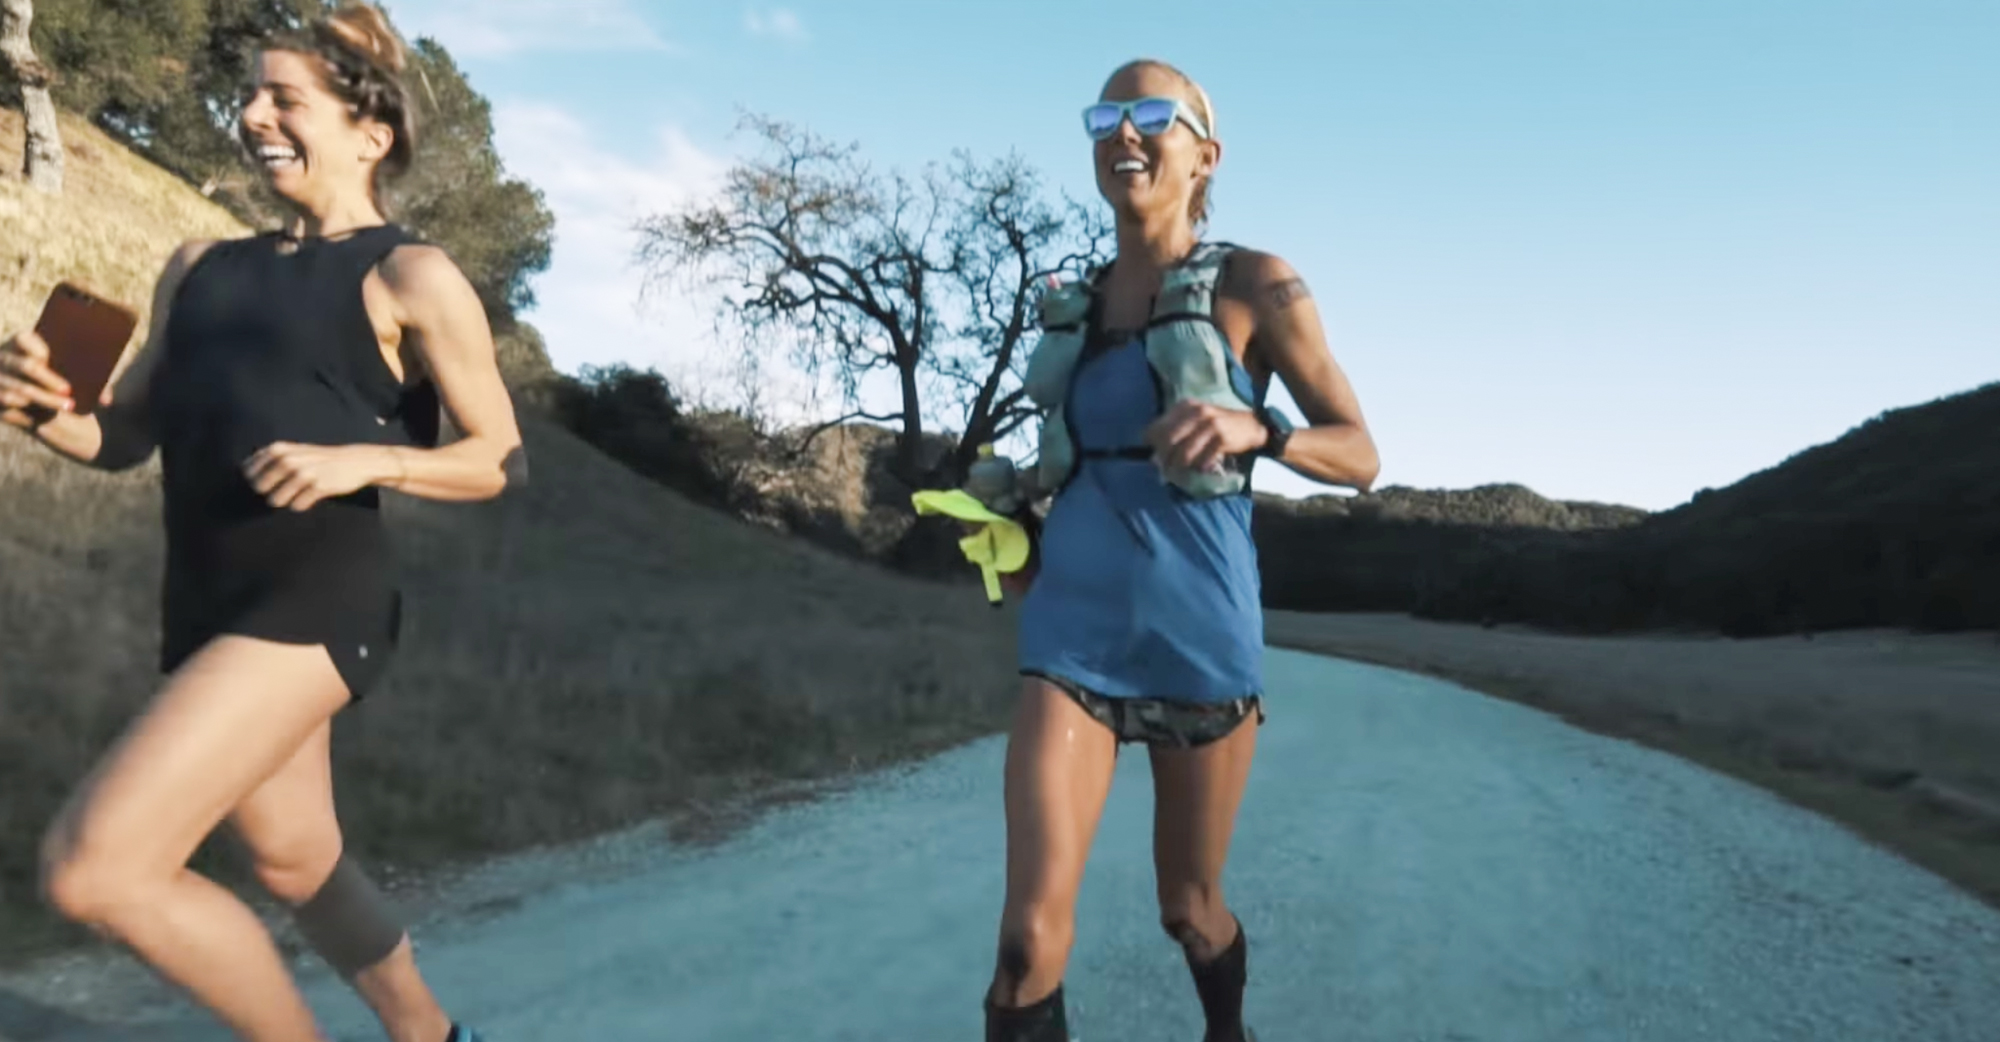 Amelia Boone Offers Raw Look Into Her First 100K  GearJunkie